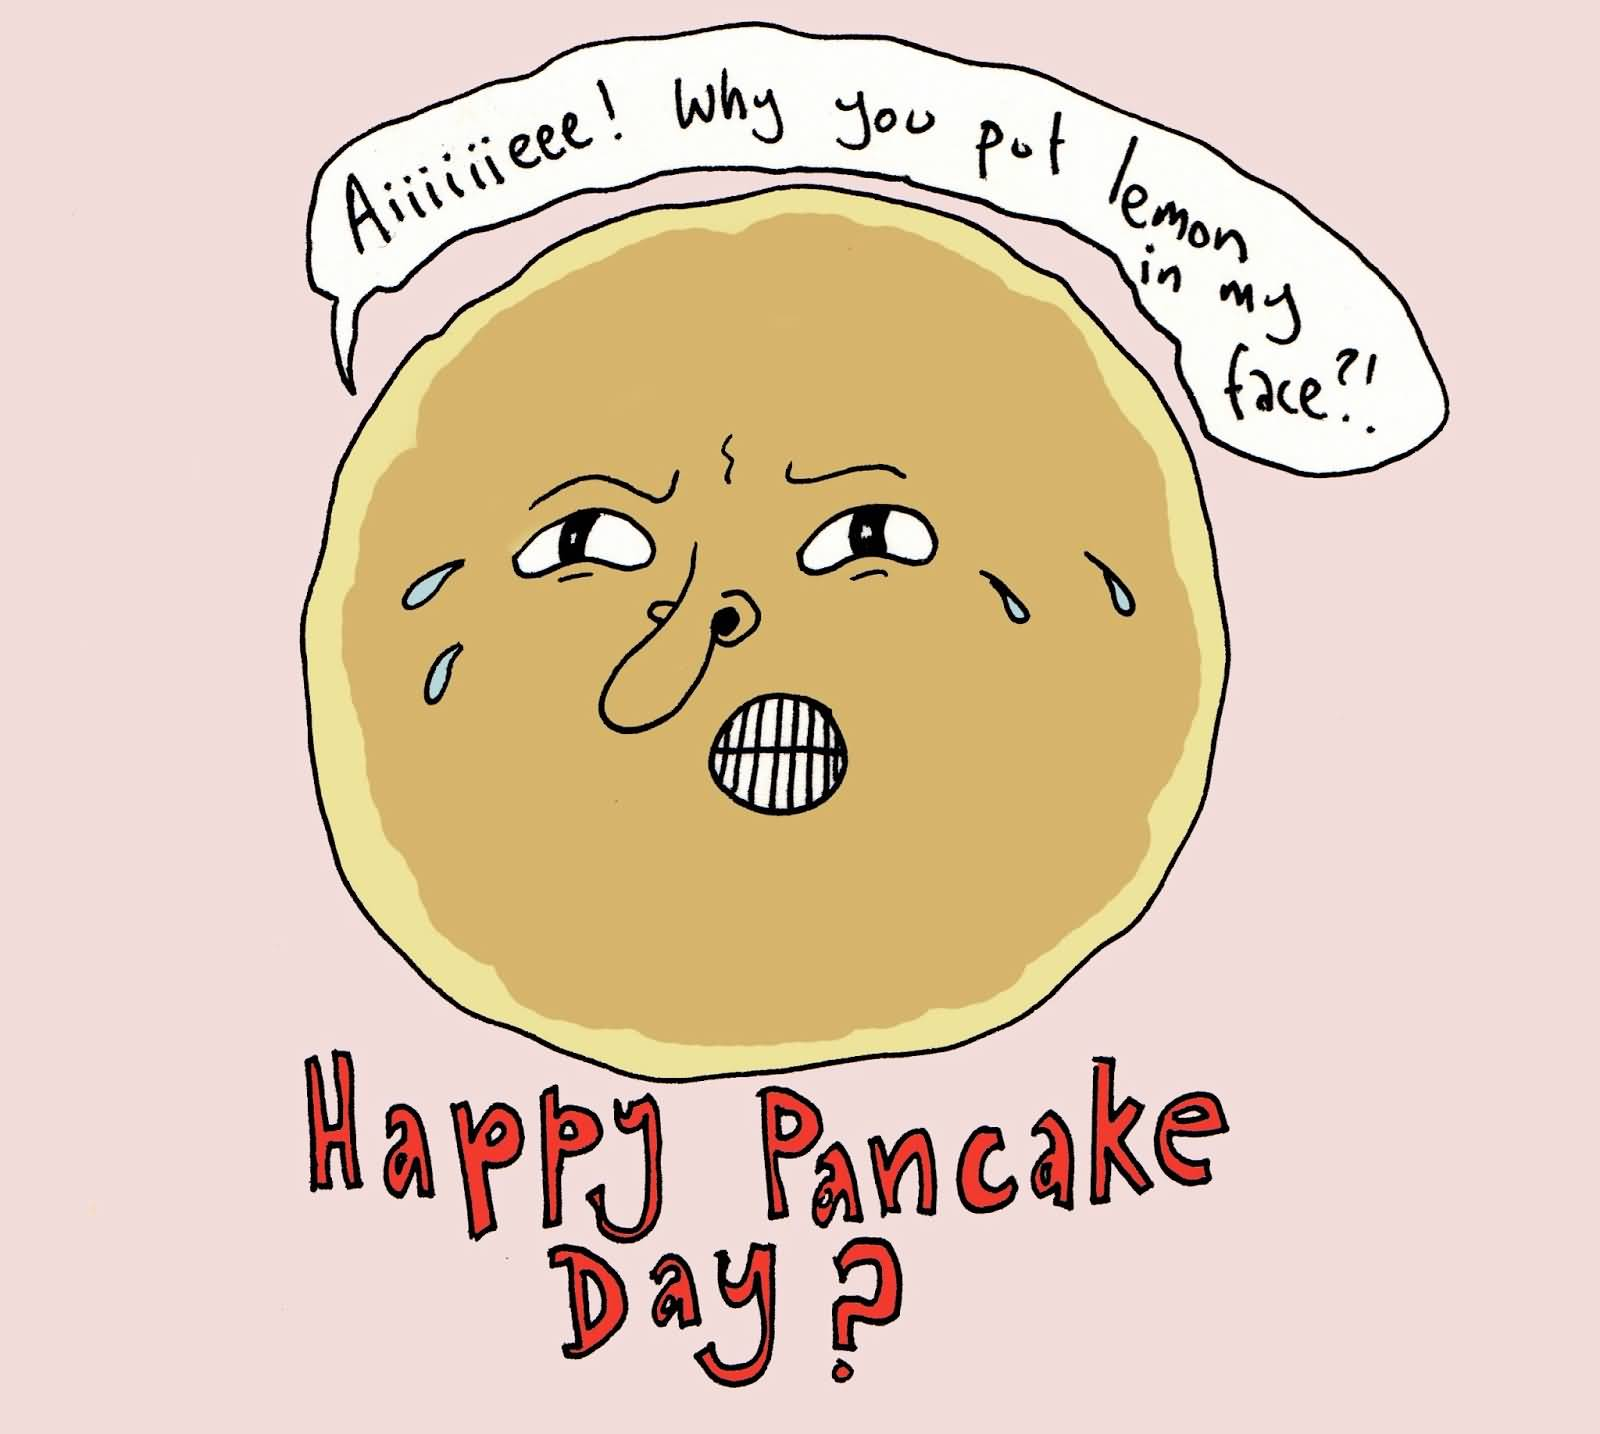 Race clipart pancake day Pancake Day Why Pancake You